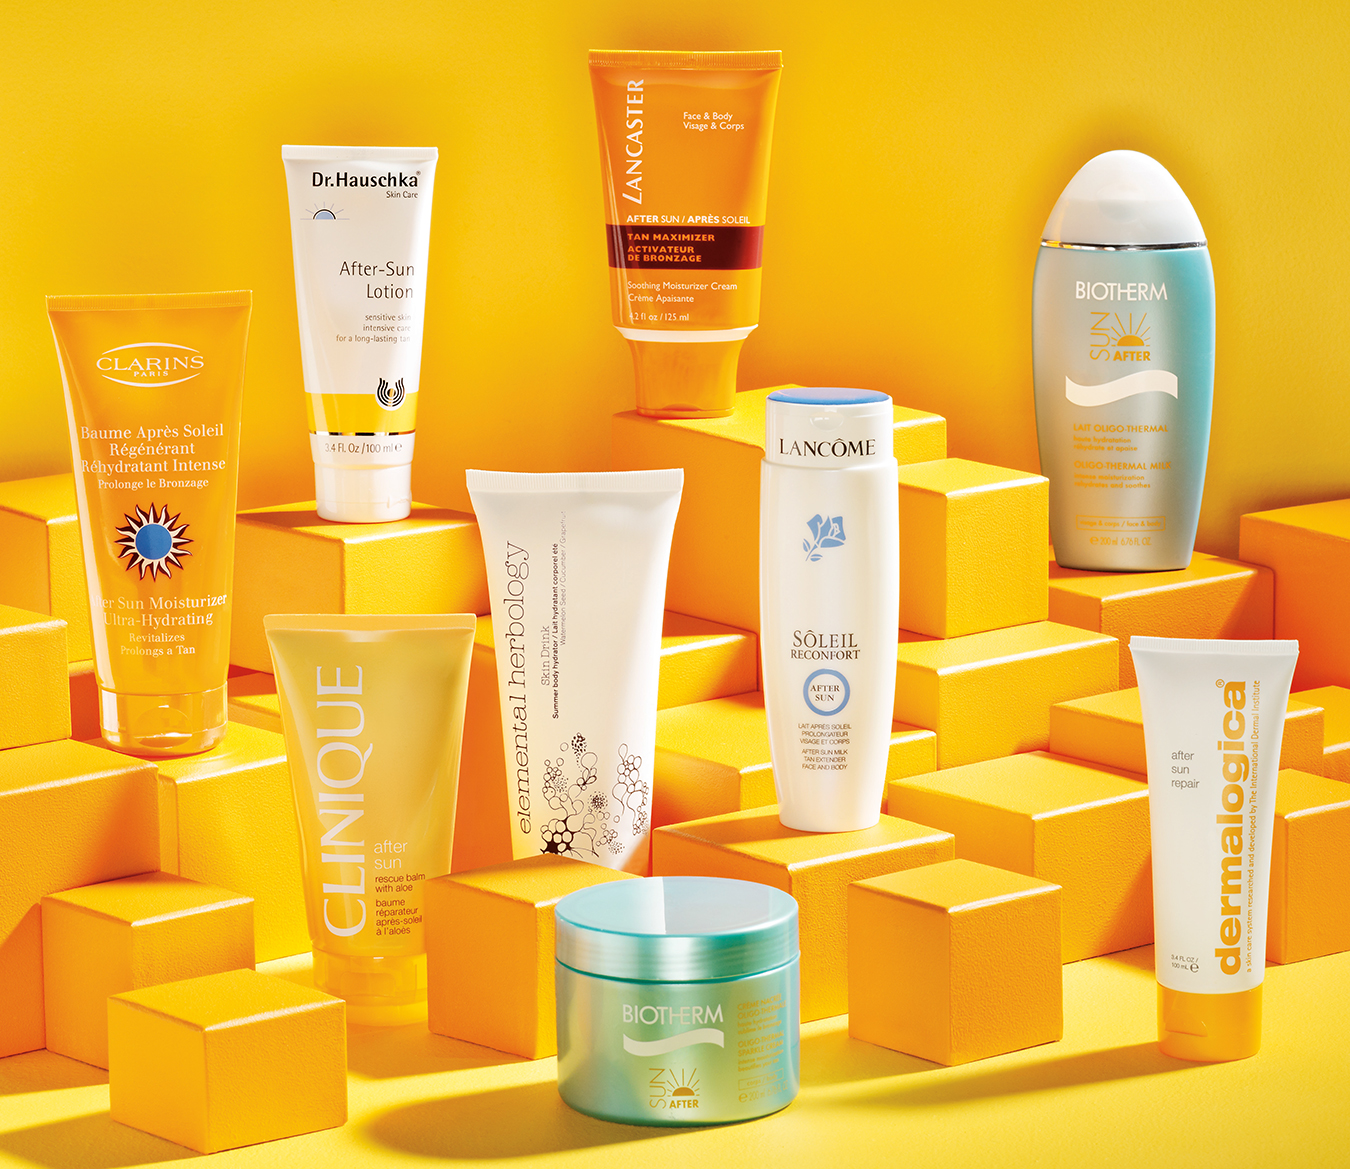 NUVO Magazine: Looking Good, After Sun Skin-Care